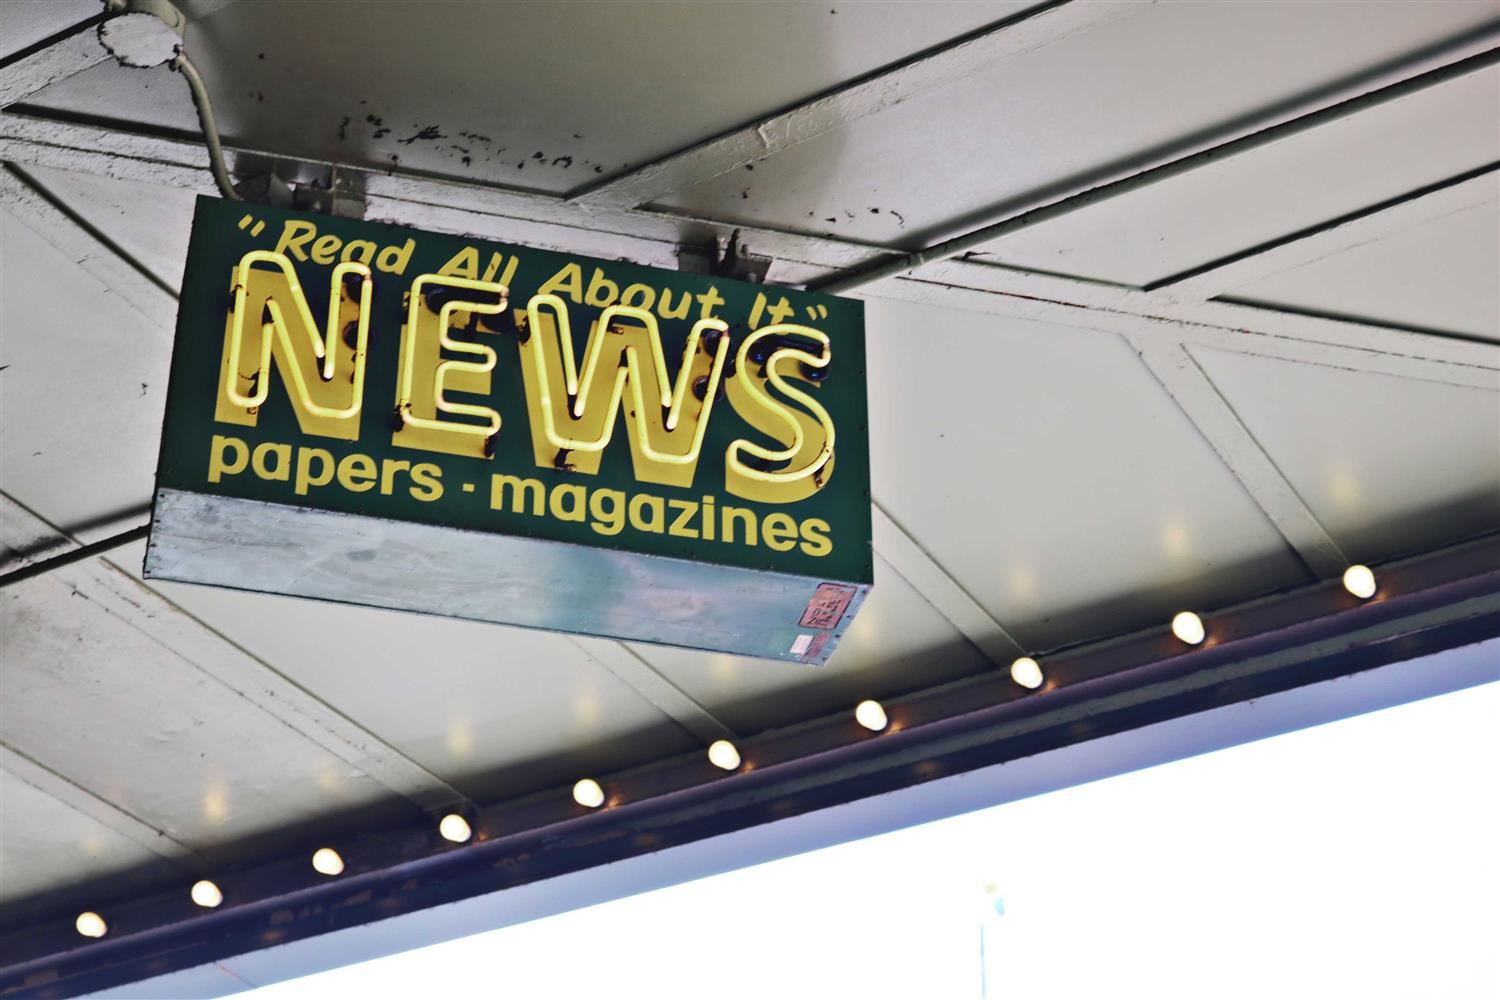 Image of a news stand